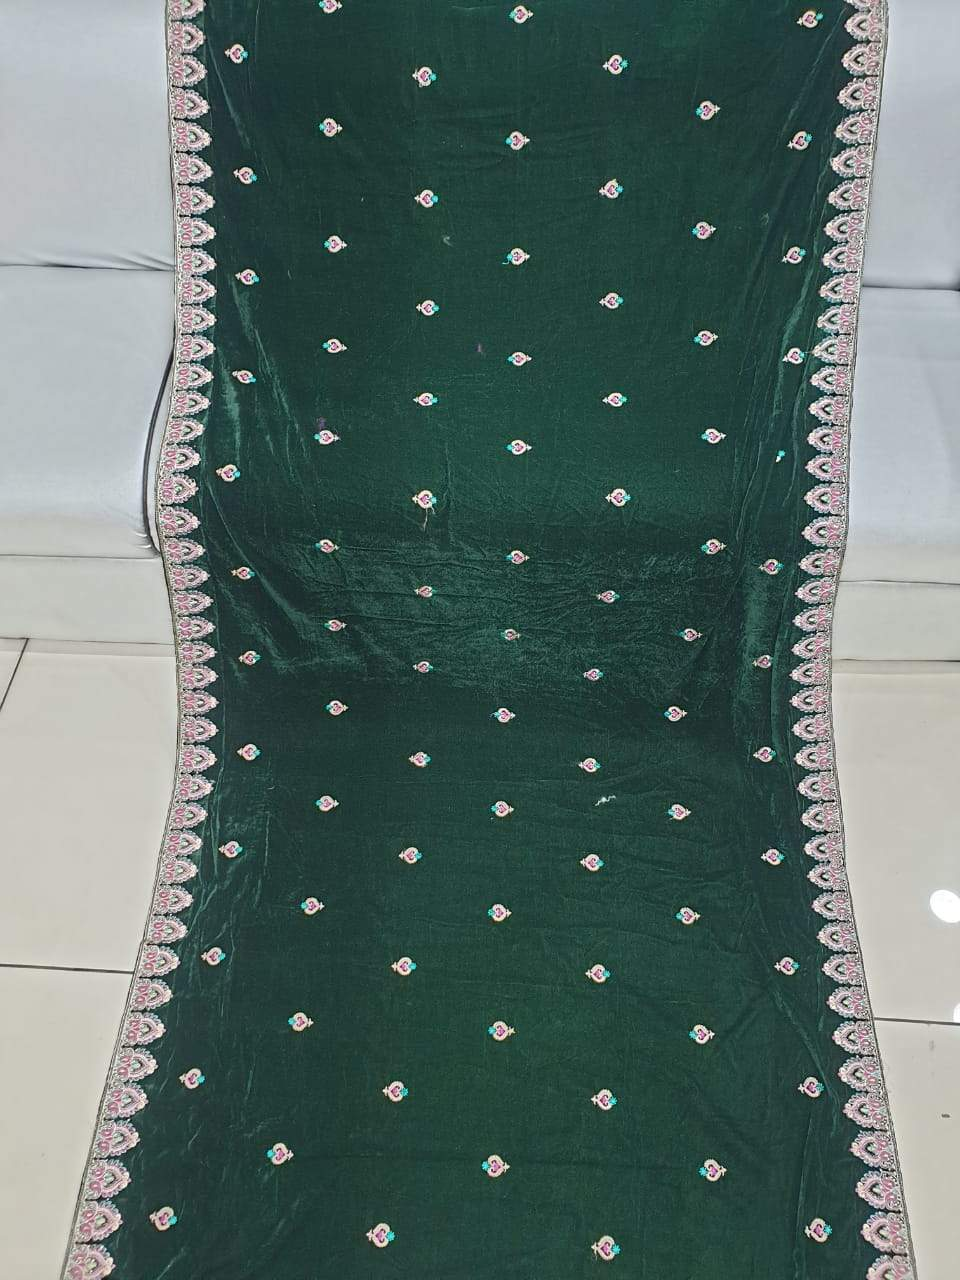 Design by Amina - Velvet Shawls with Hand Embroidery